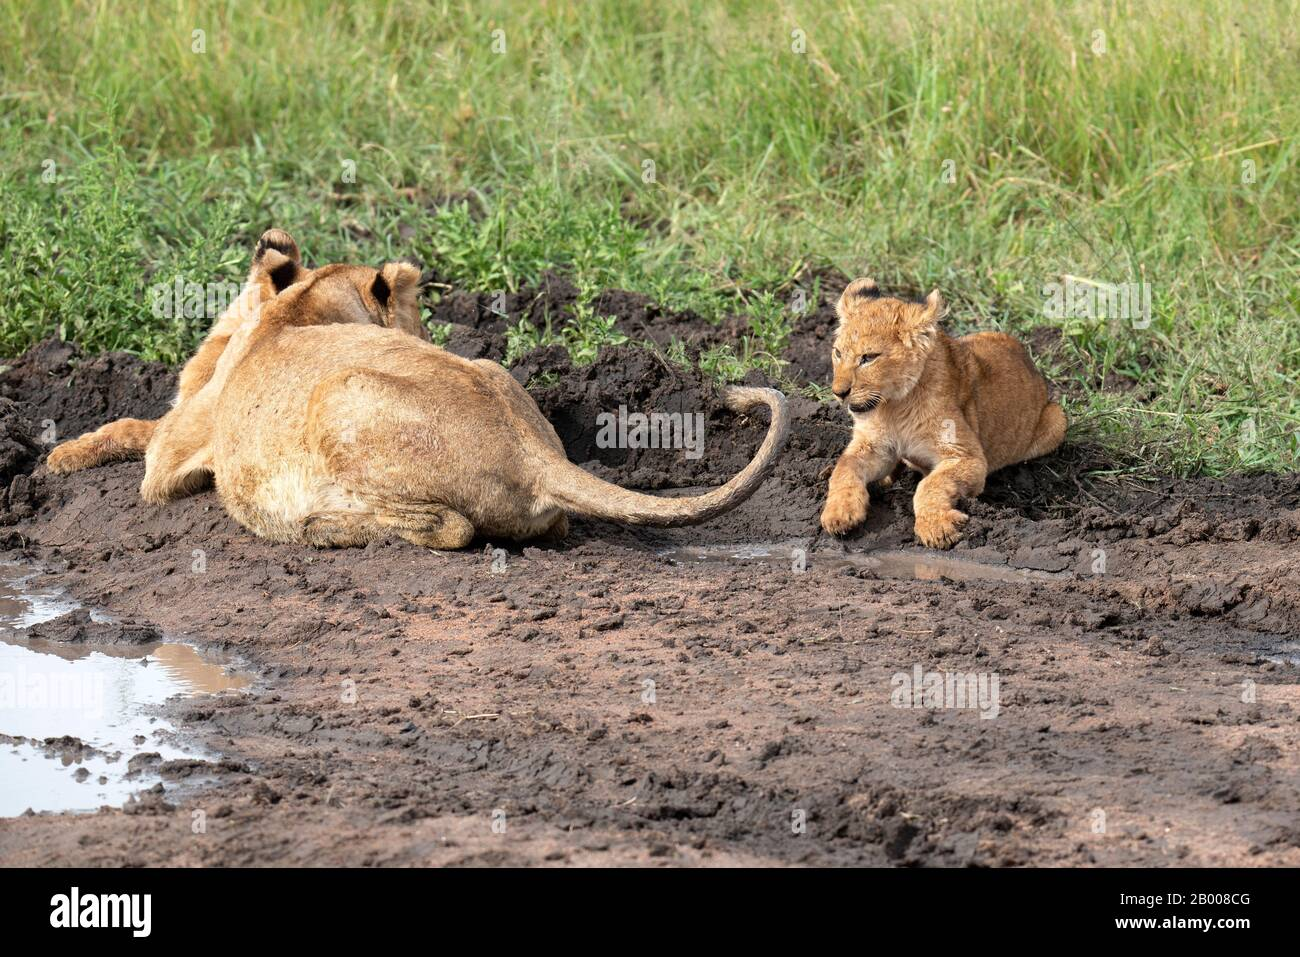 Cheeky Lion cub playing with mum's tail Stock Photo